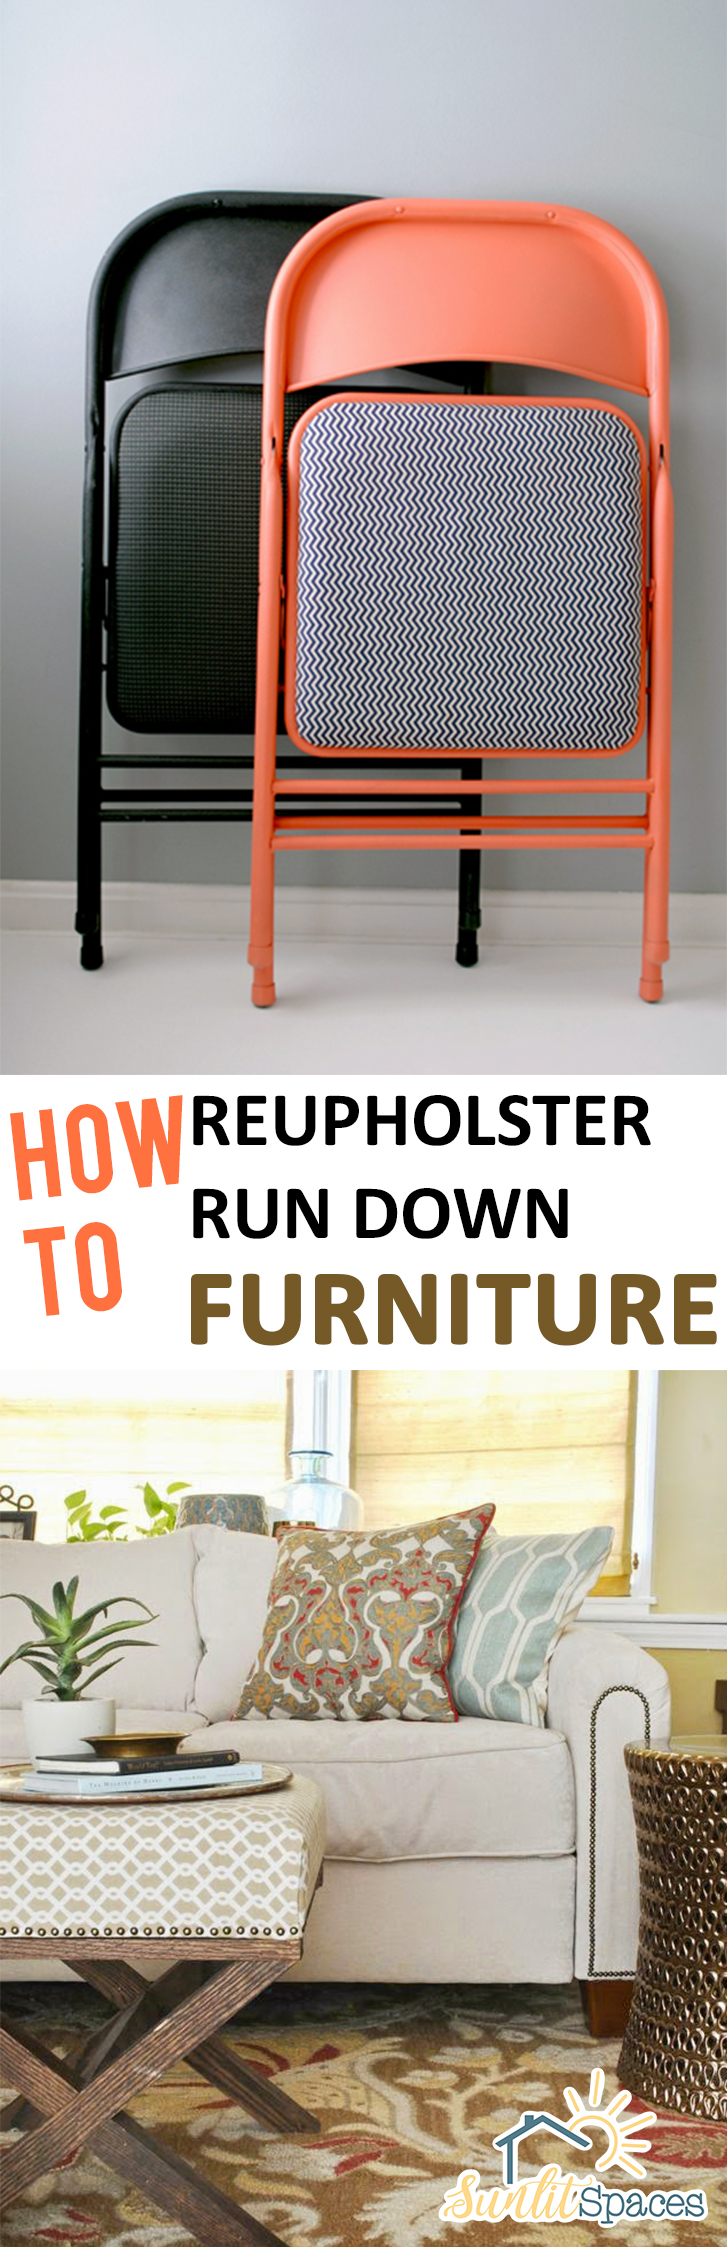 How to Rehupolster Furniture, How to Upgrade Furniture, Furniture Remodeling, How to Remodel Furniture, Easy Ways to Rehupolster Furniture, Home Crafts, Easy Crafts for the Home, Popular Pin